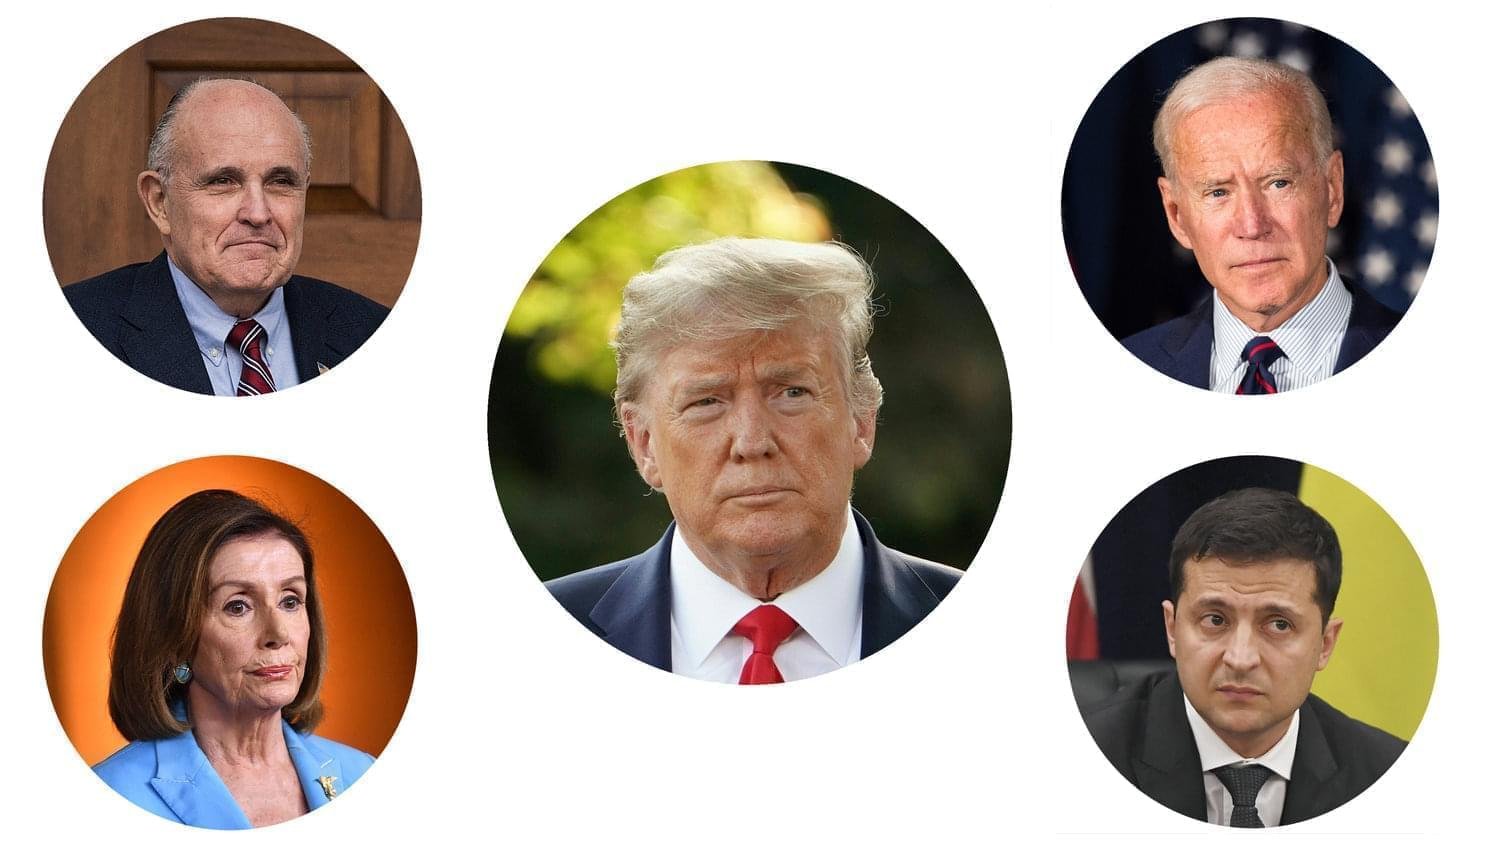 Clockwise from top left: Rudy Giuliani, Donald Trump, Joe Biden, Ukrainian president Volodymyr Zelenskiy and House Speaker Nancy Pelosi.